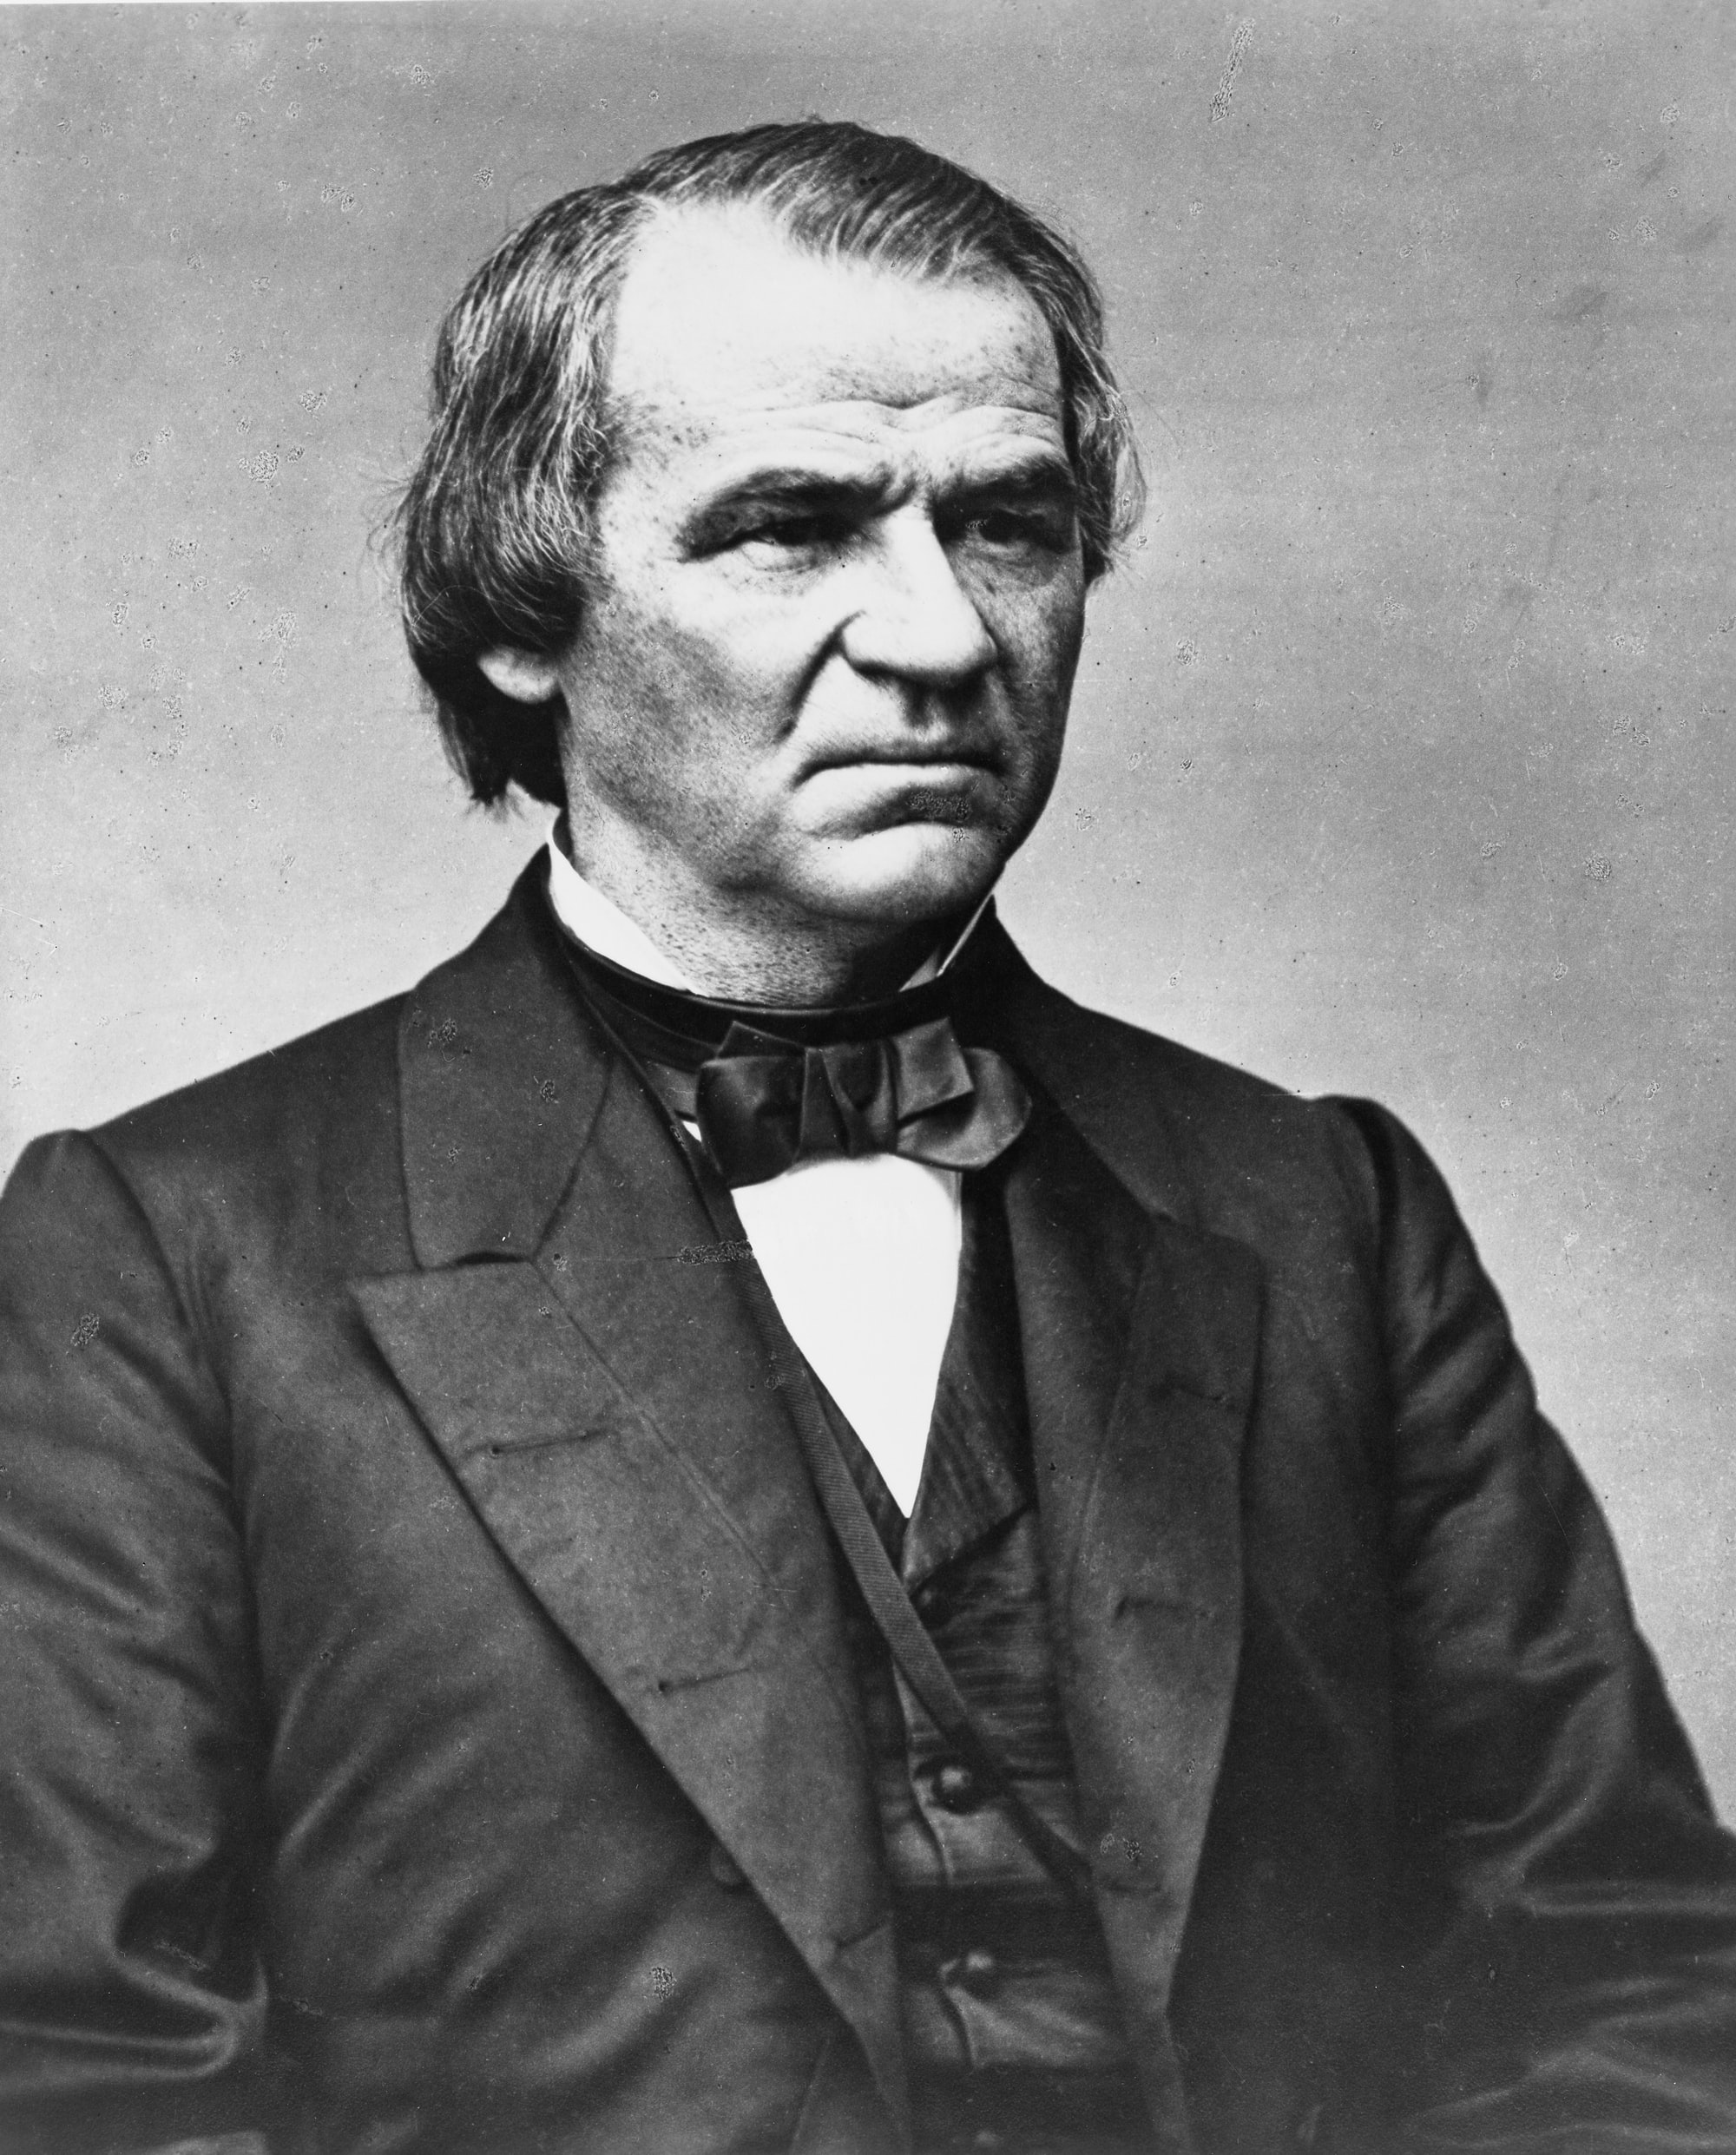 [Hon. Andrew Johnson, half-length portrait, facing left]. Photograph from the Brady-Handy Collection, [between 1855 and 1865, printed later]. Library of Congress Prints & Photographs Division. https://www.loc.gov/resource/cph.3a53290/